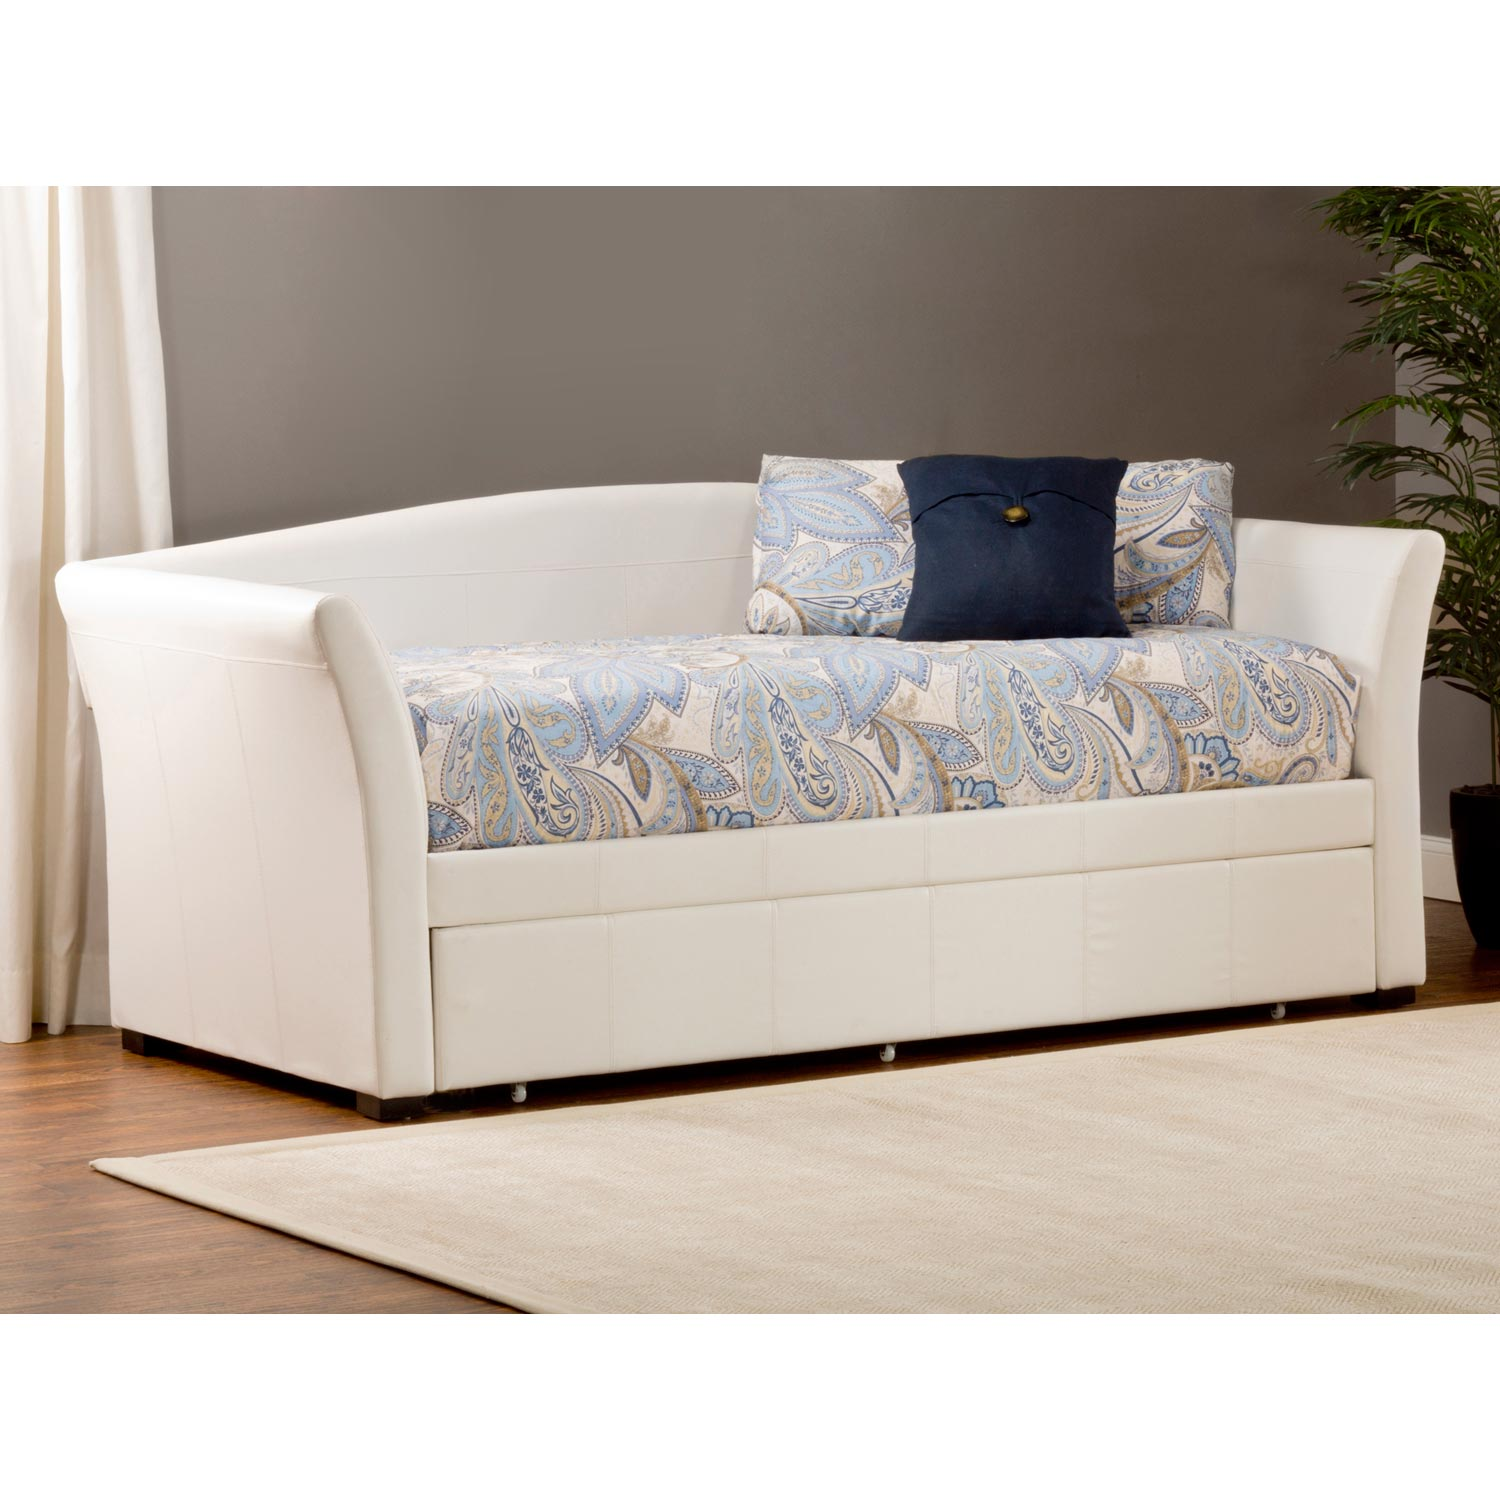 Montgomery Upholstered Daybed Amp Trundle White Dcg Stores